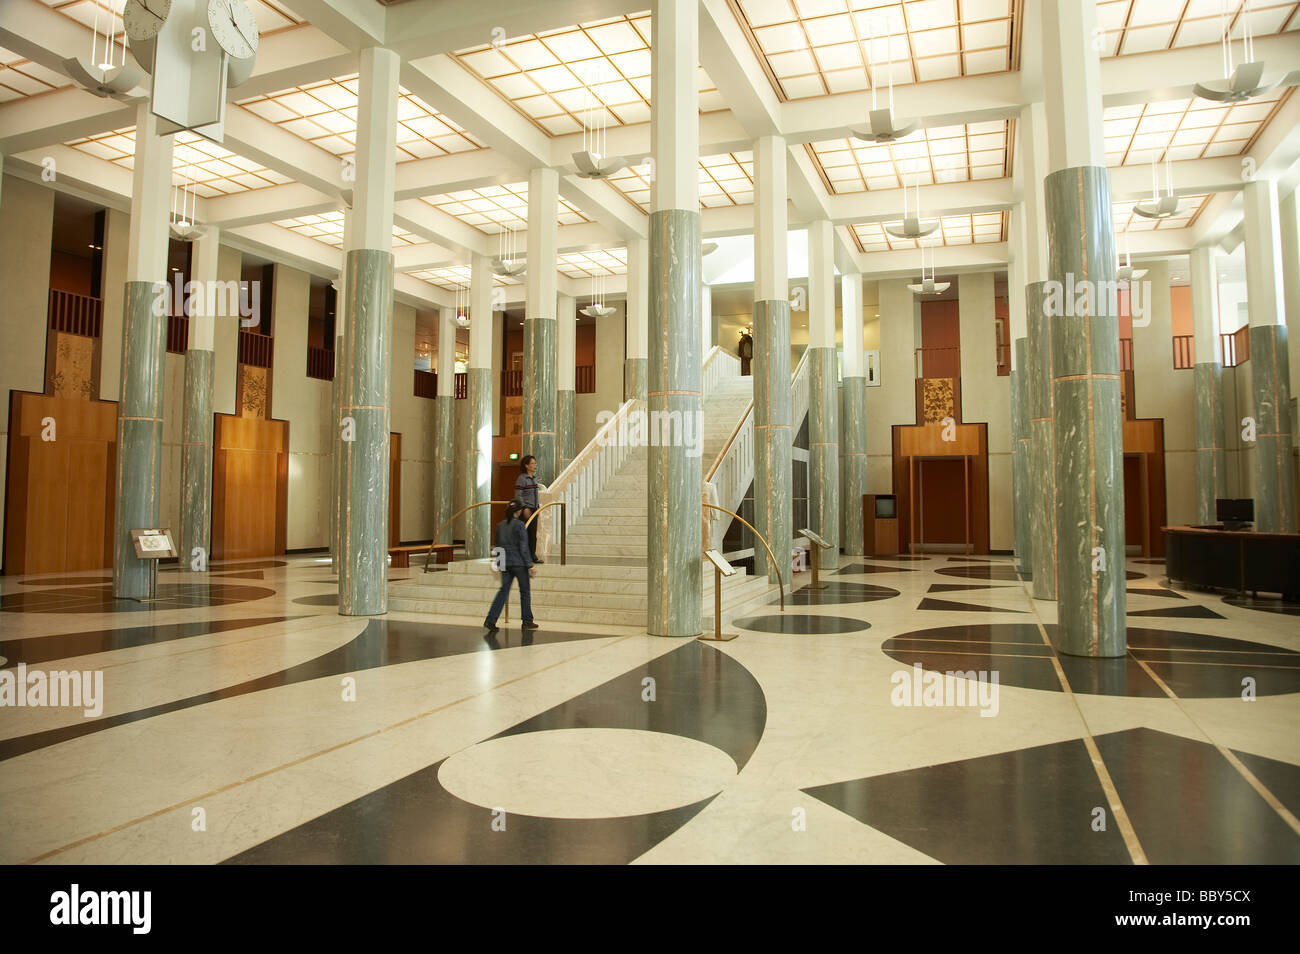 Marble Interior Lobby Parliament House Capital Hill Canberra ACT Australia    Stock Image